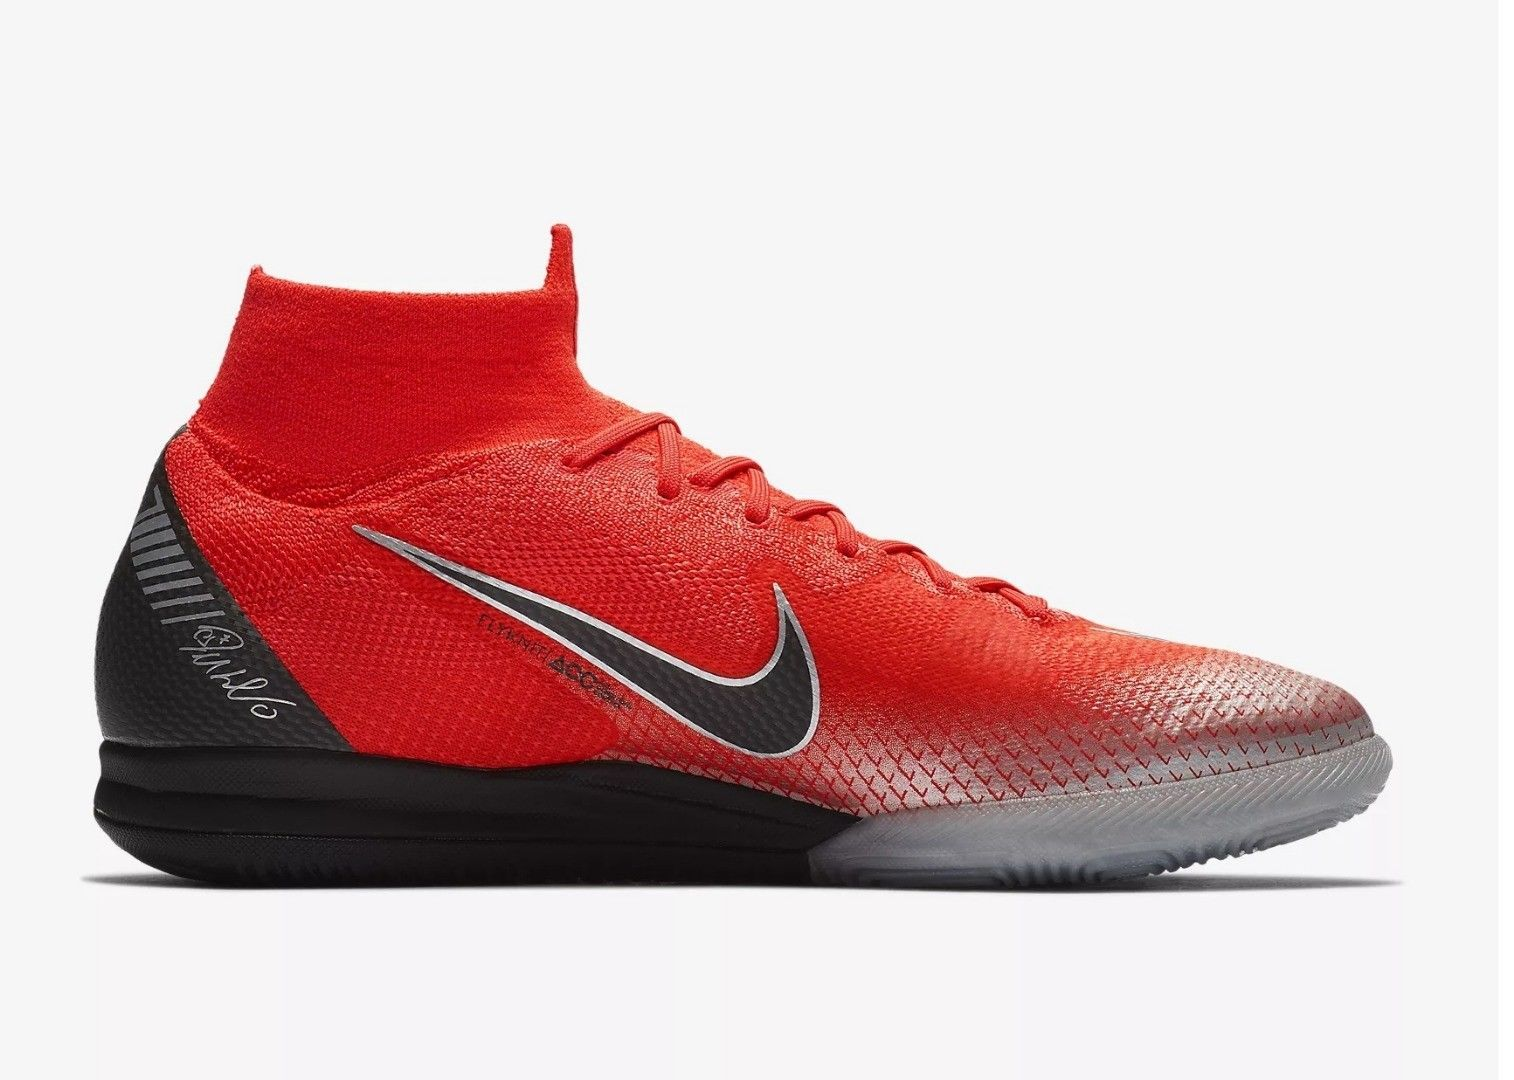 NEW NIKE FLASH CRIMSON CR7 SUPERFLY X 6 ELITE IC SOCCER CLEATS SNEAKERS SIZE 10